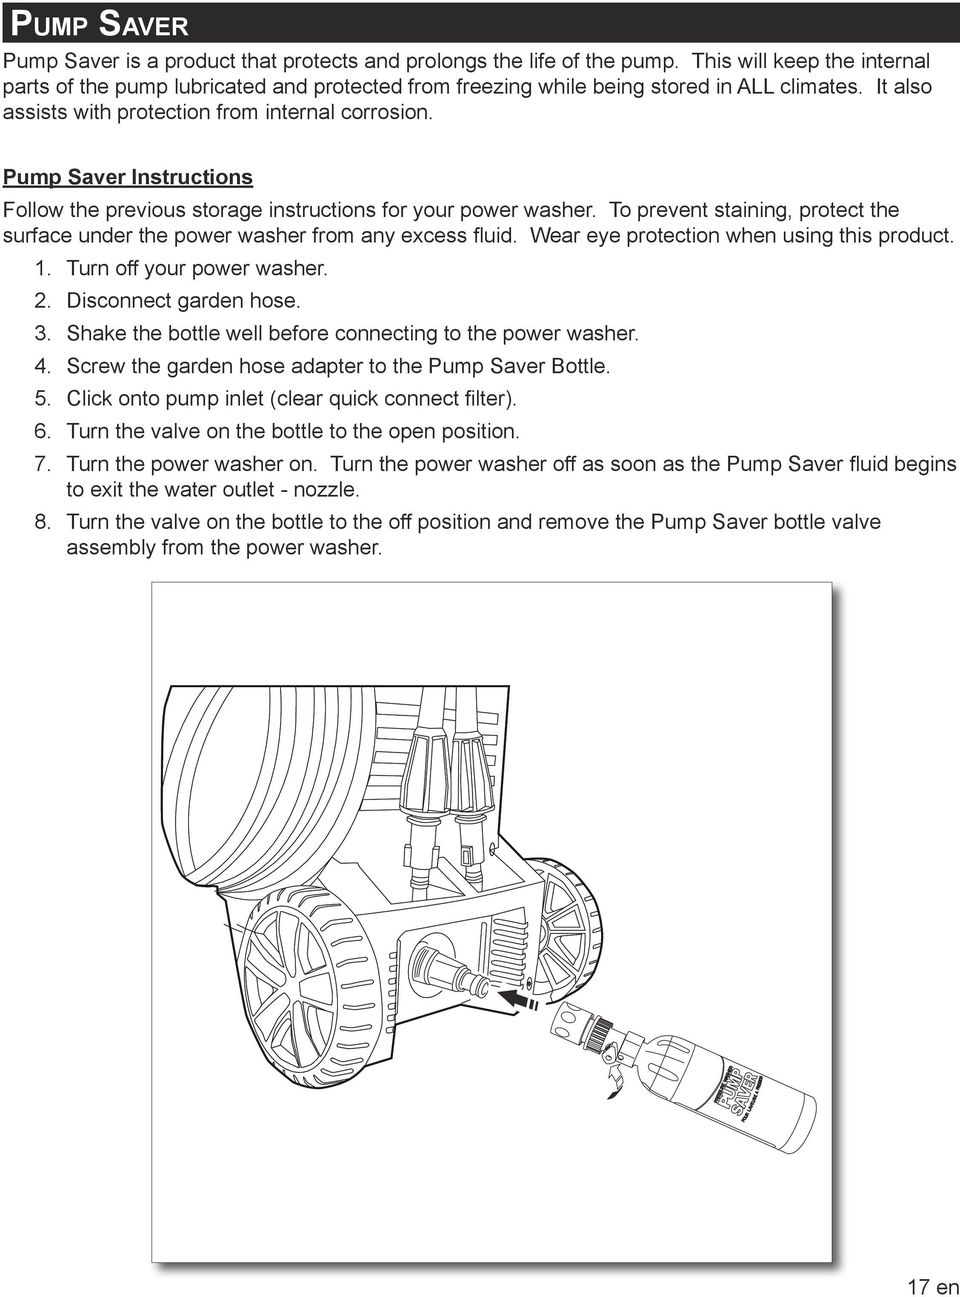 Pump Saver Instructions Follow the previous storage instructions for your power washer. To prevent staining, protect the surface under the power washer from any excess fluid.